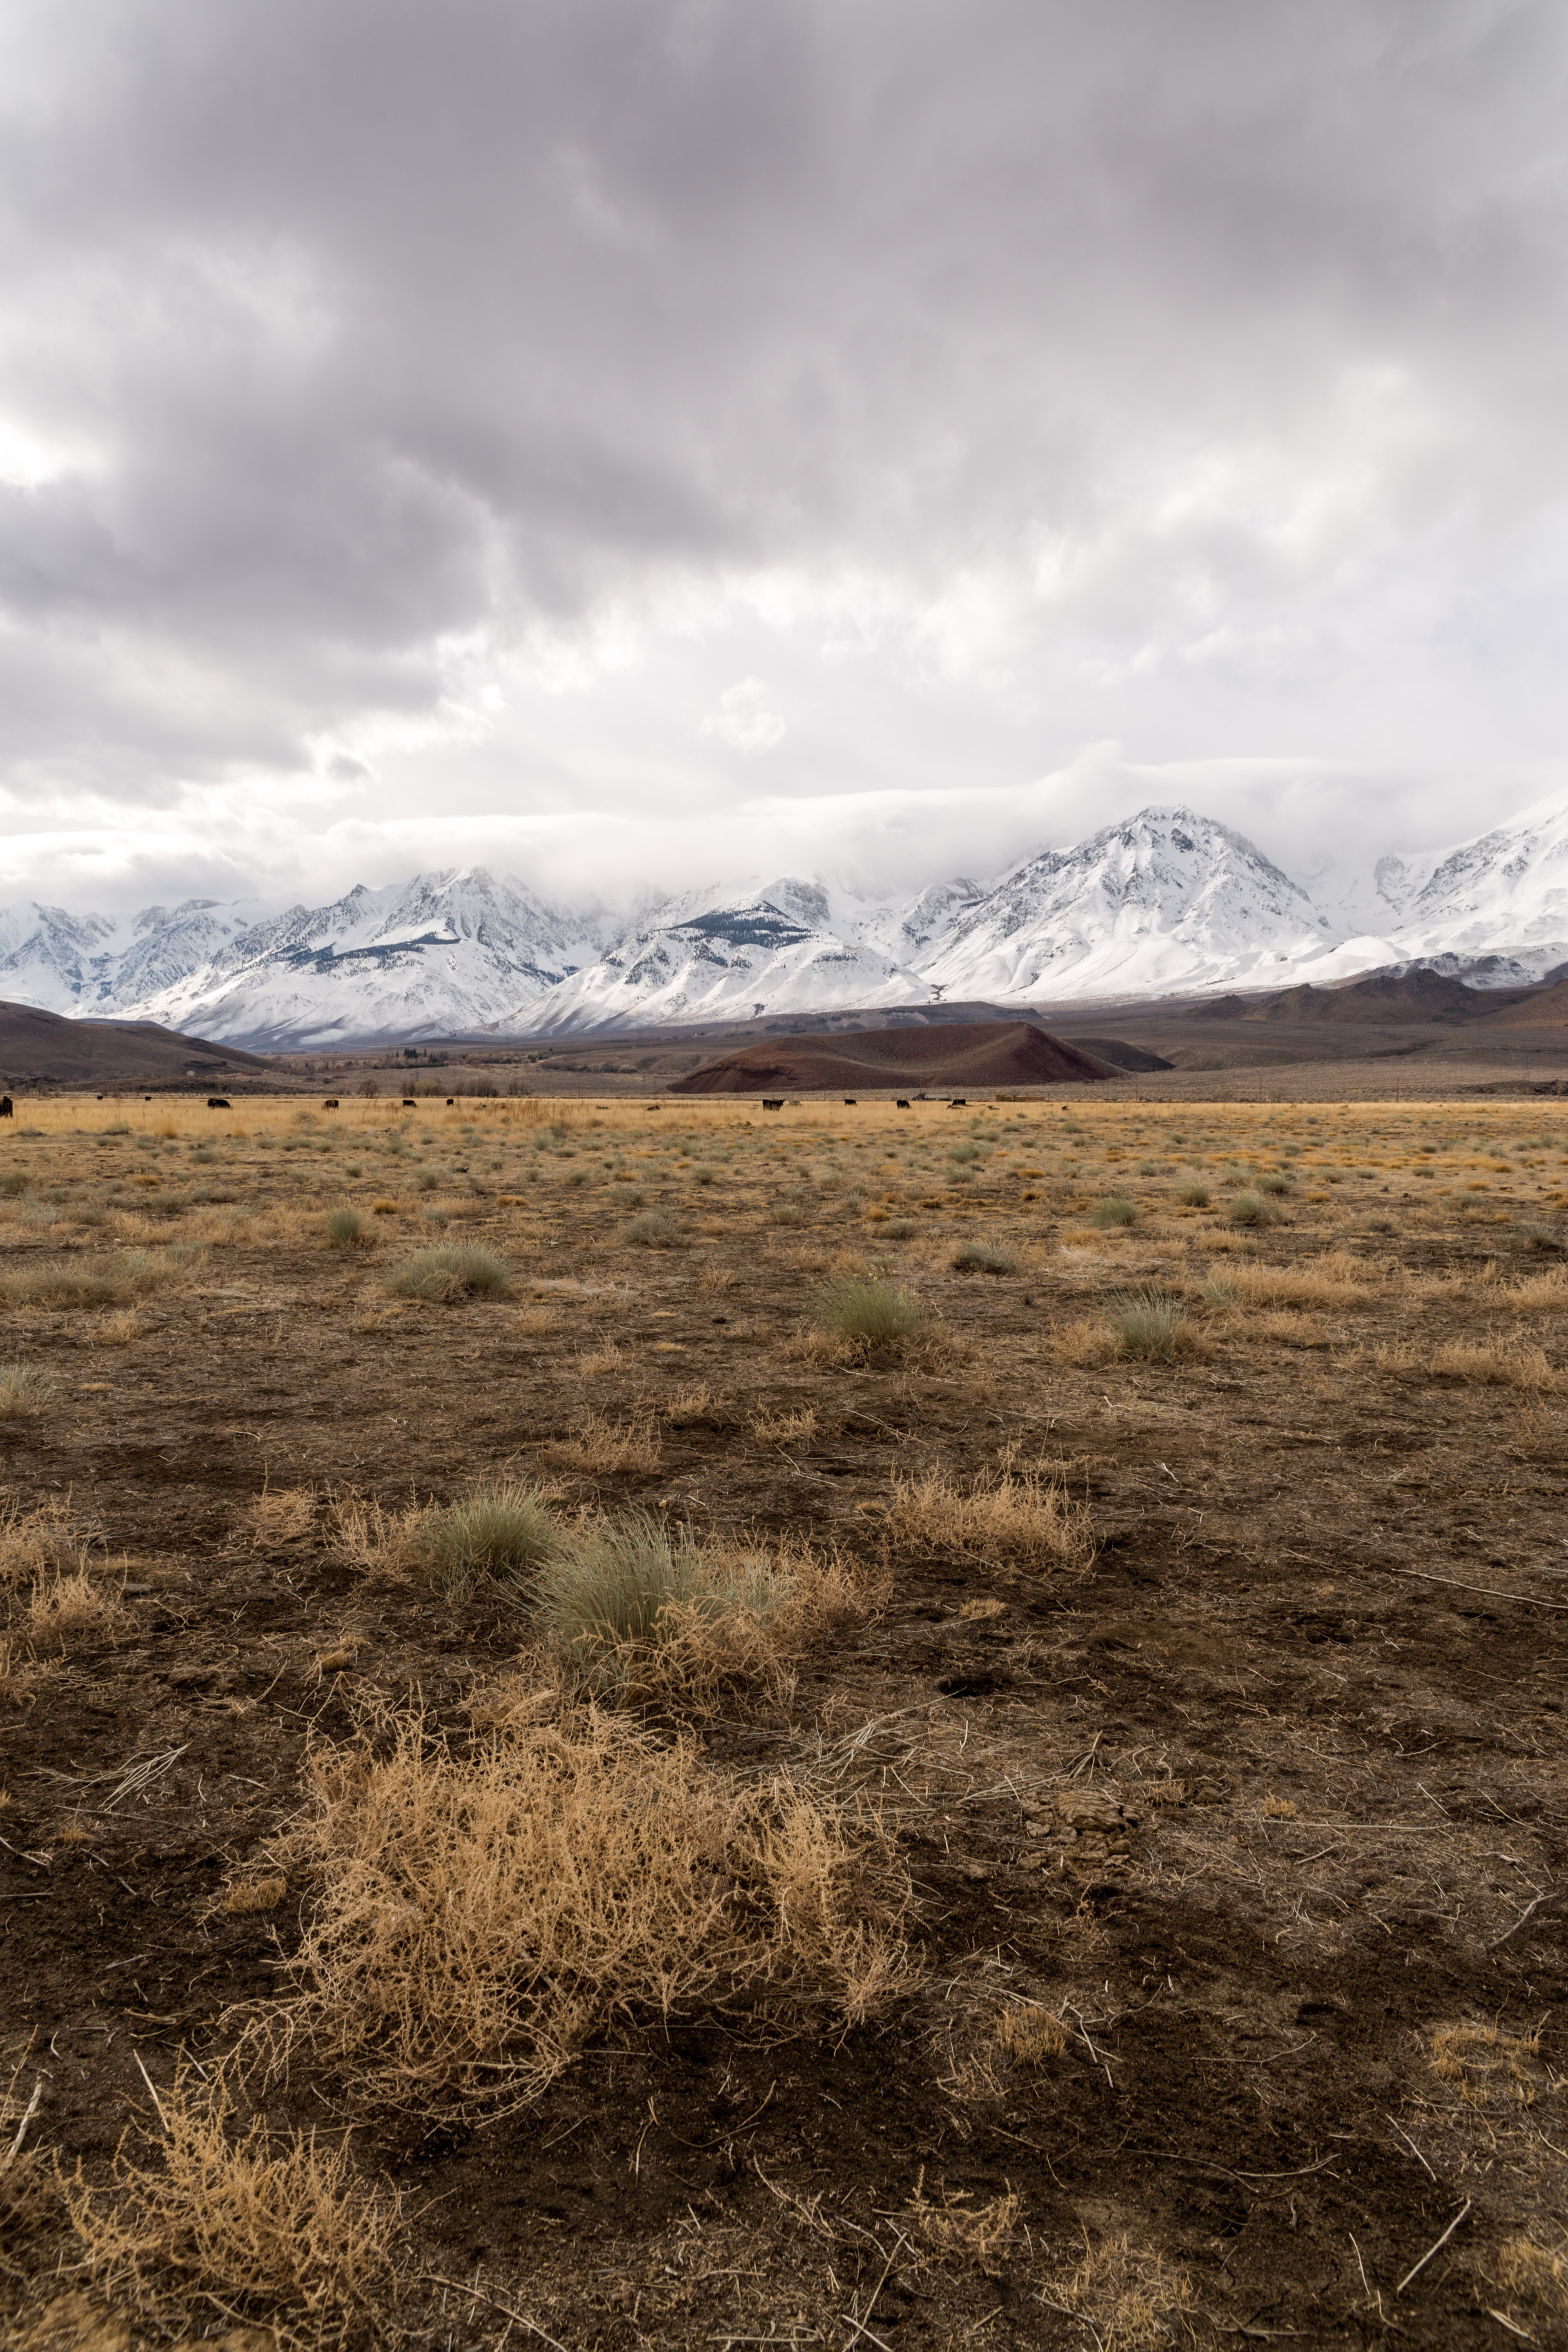 A vast dry plain stretching to the snow-covered mountains on the horizon